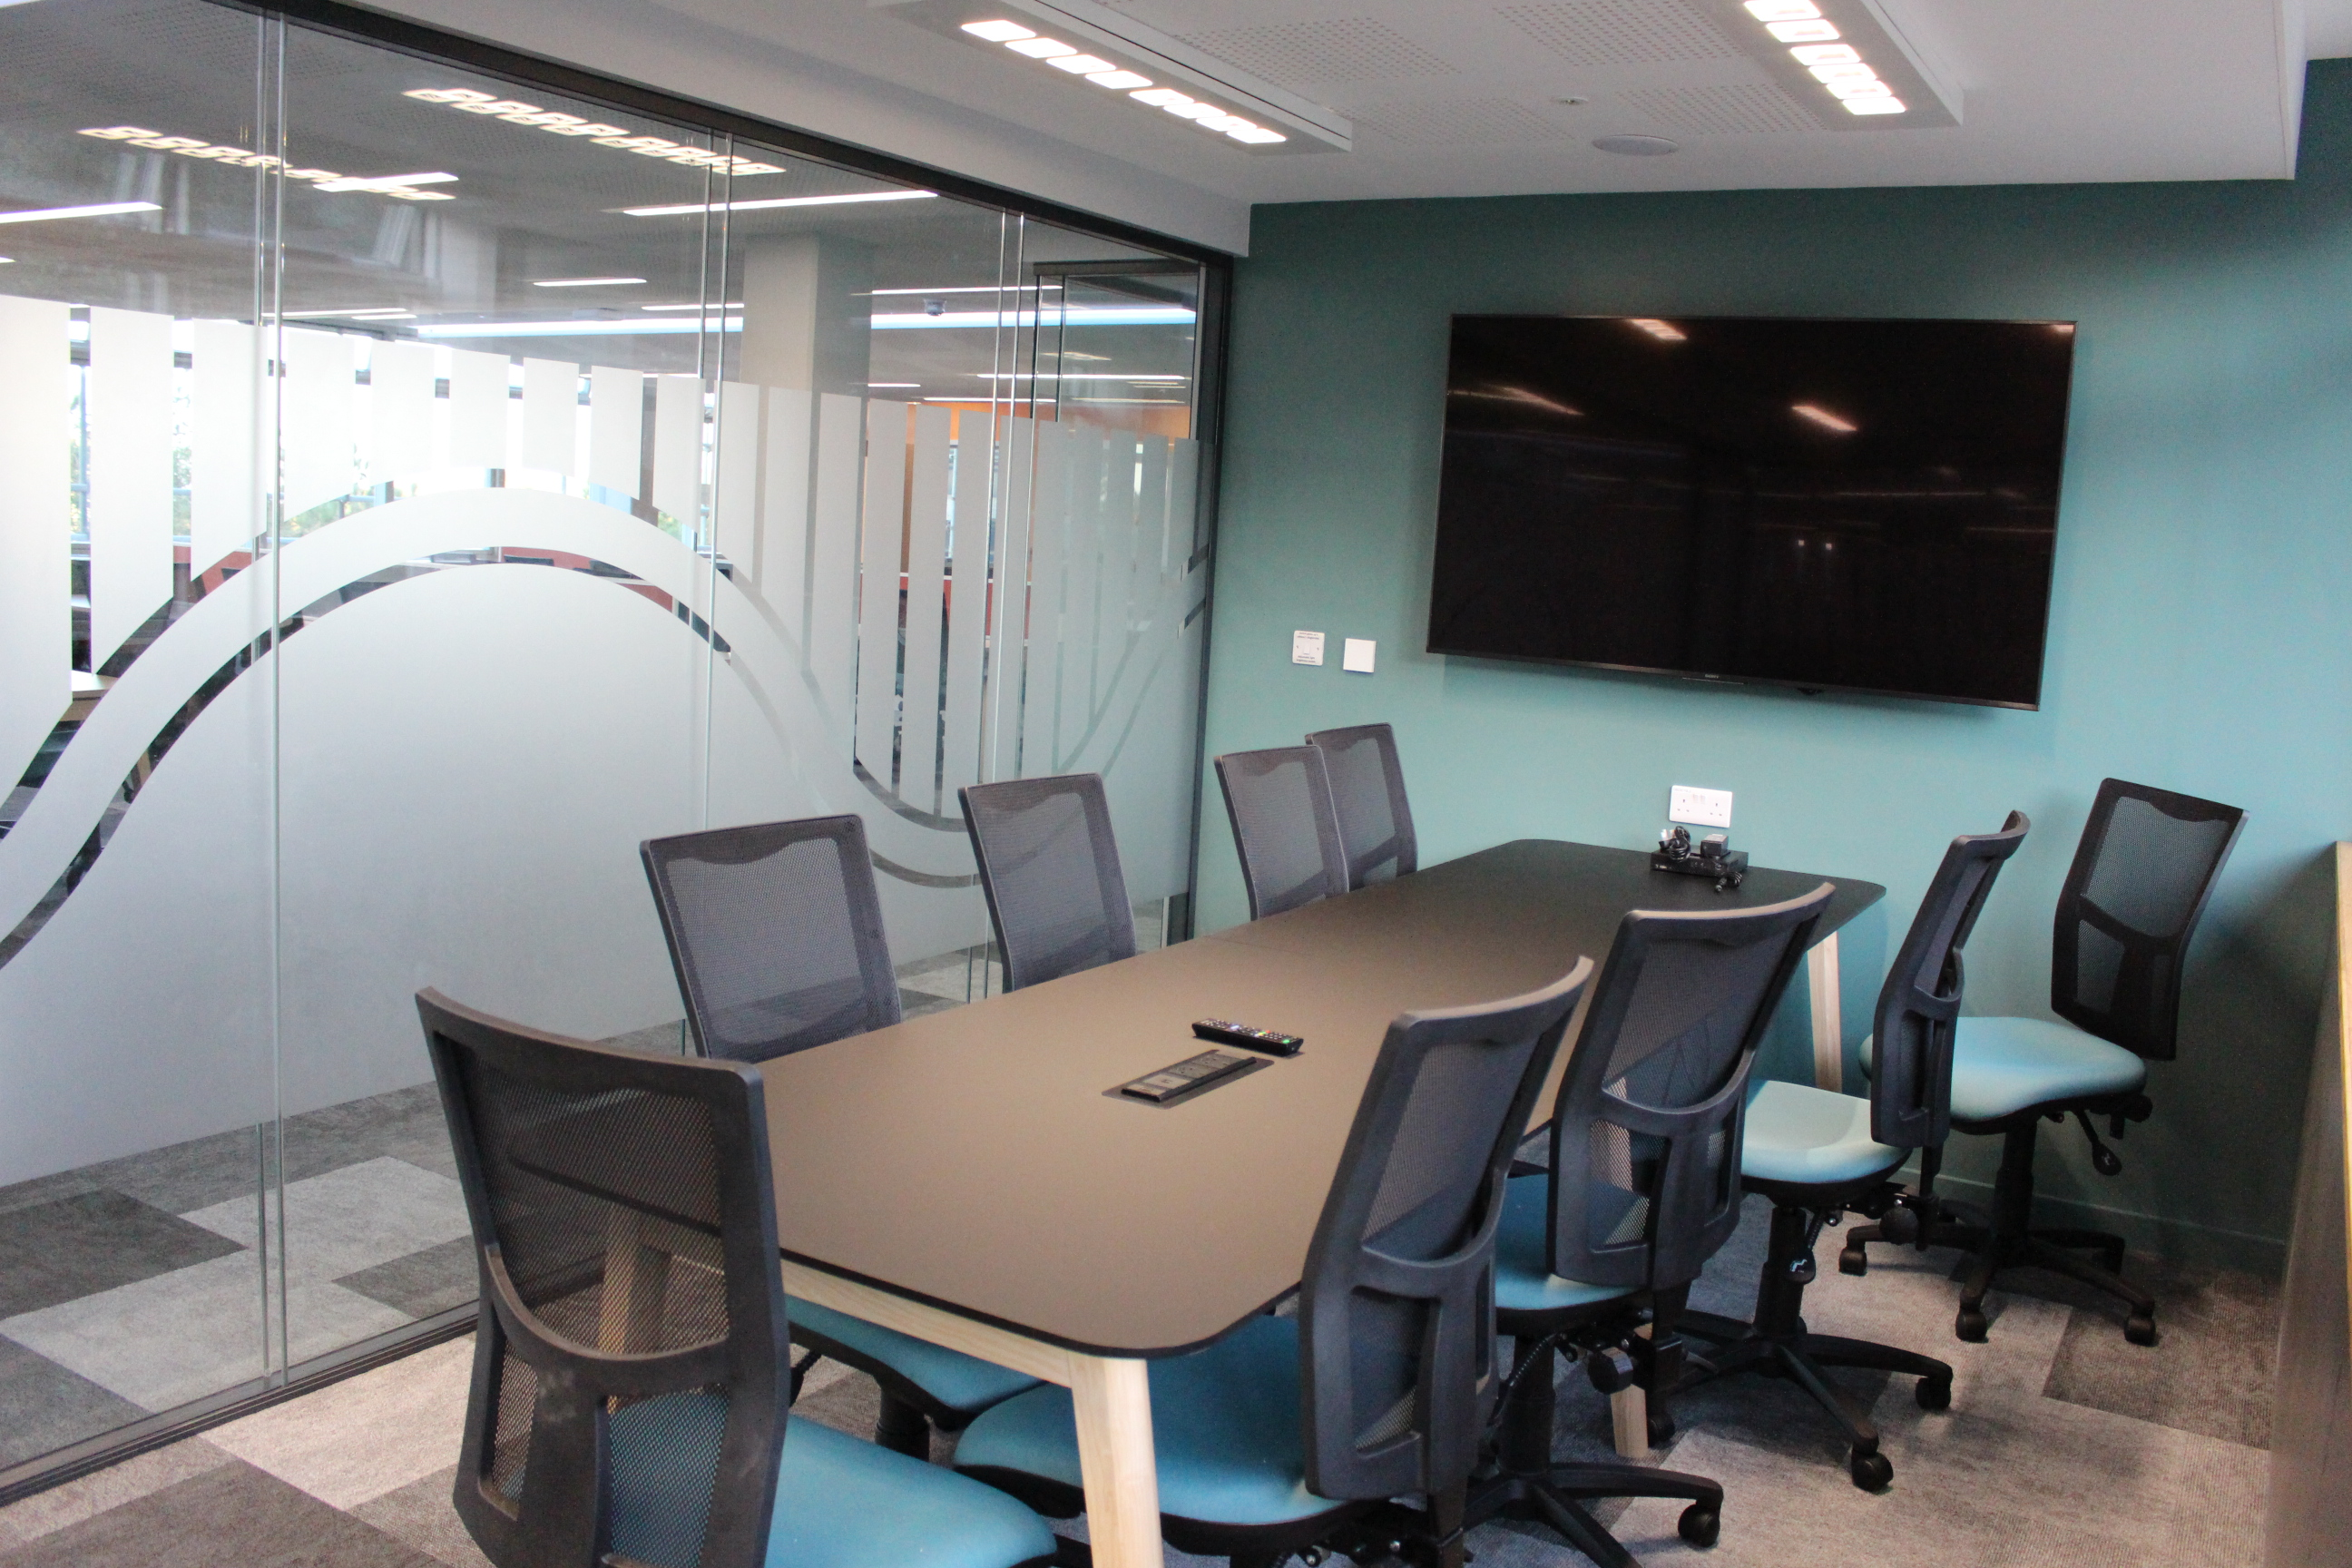 One of the new Group Study rooms